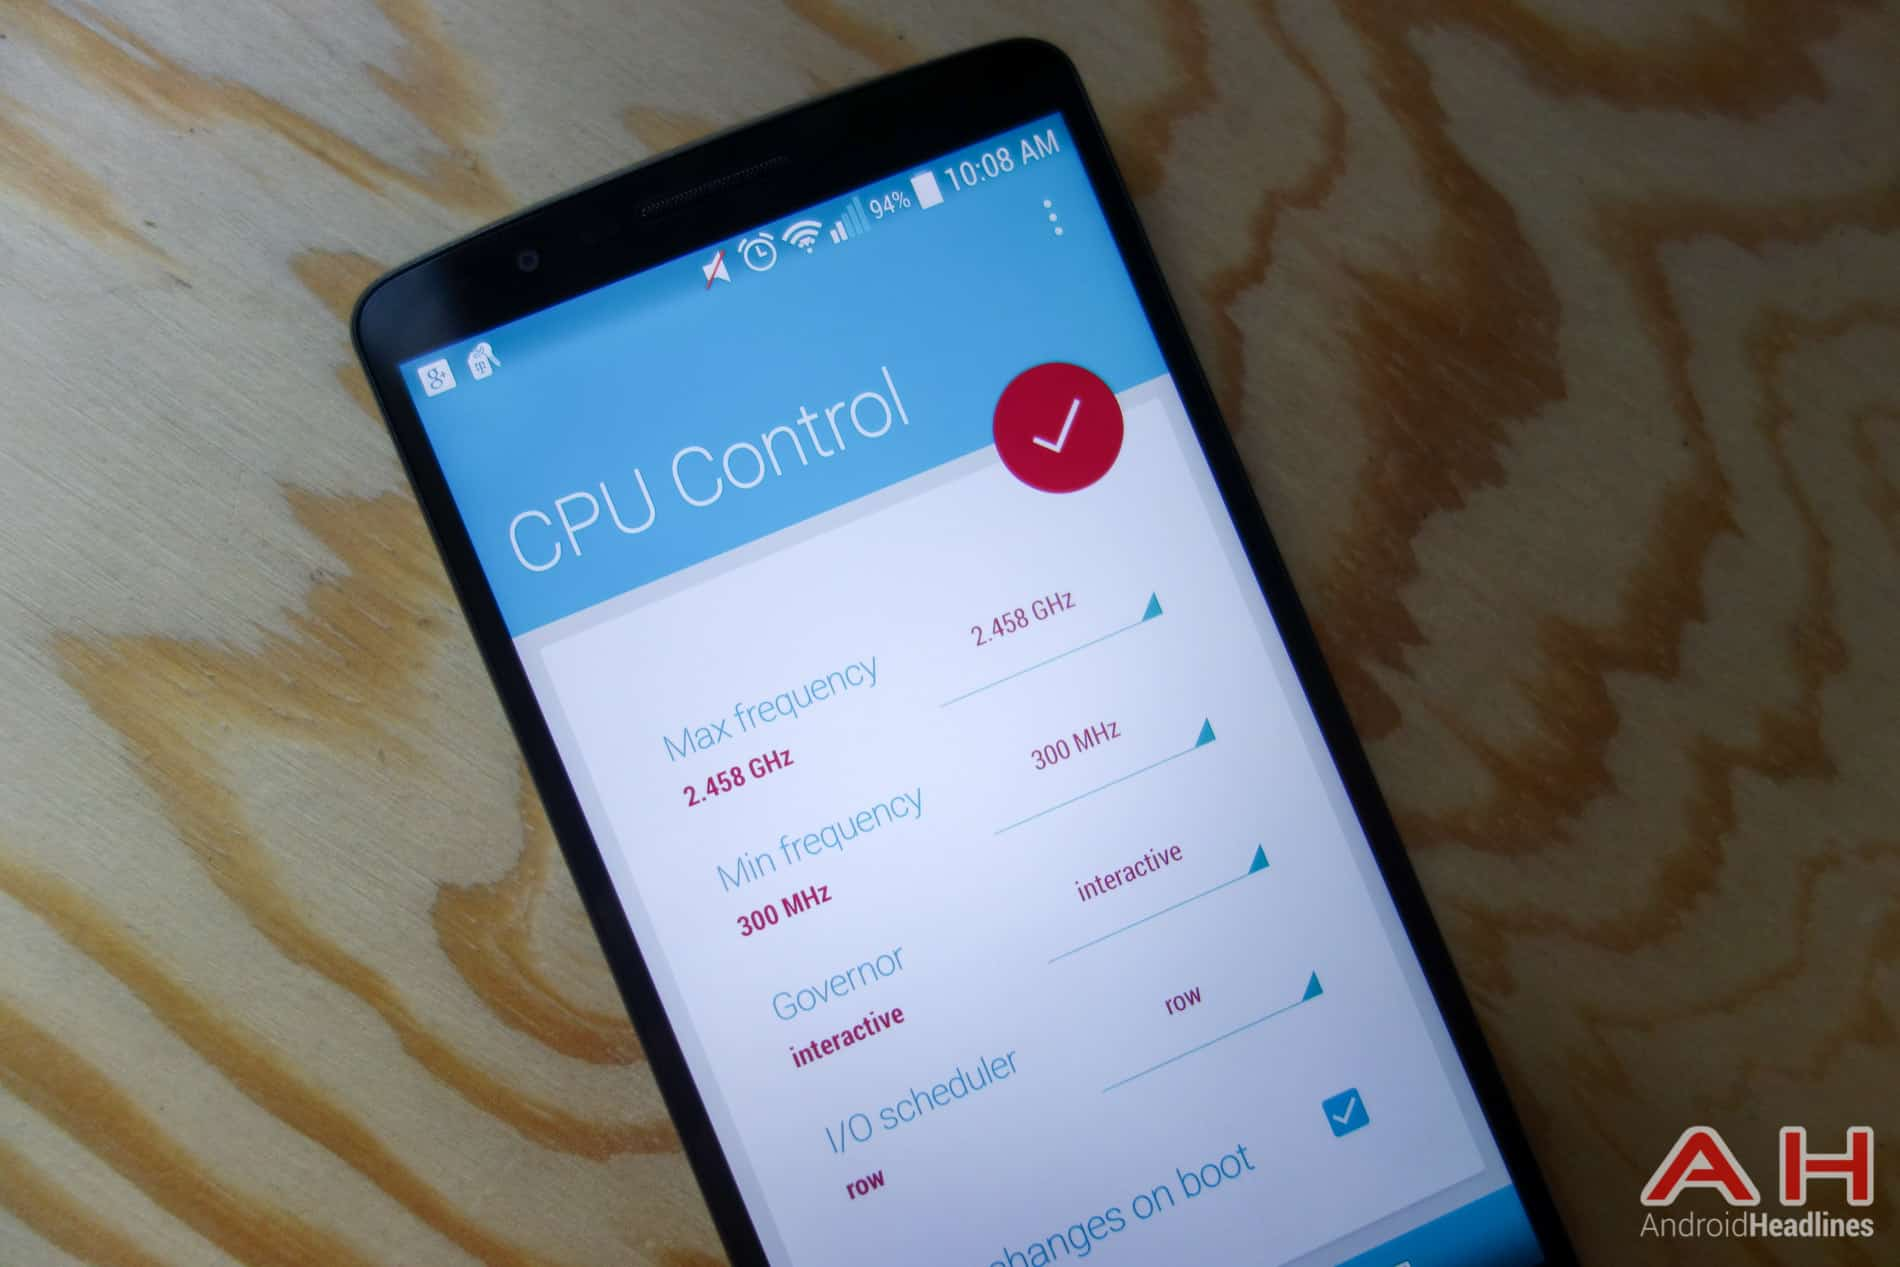 Camera Phone Control Android control the cpu on your android phone or tablet in material design ah 1